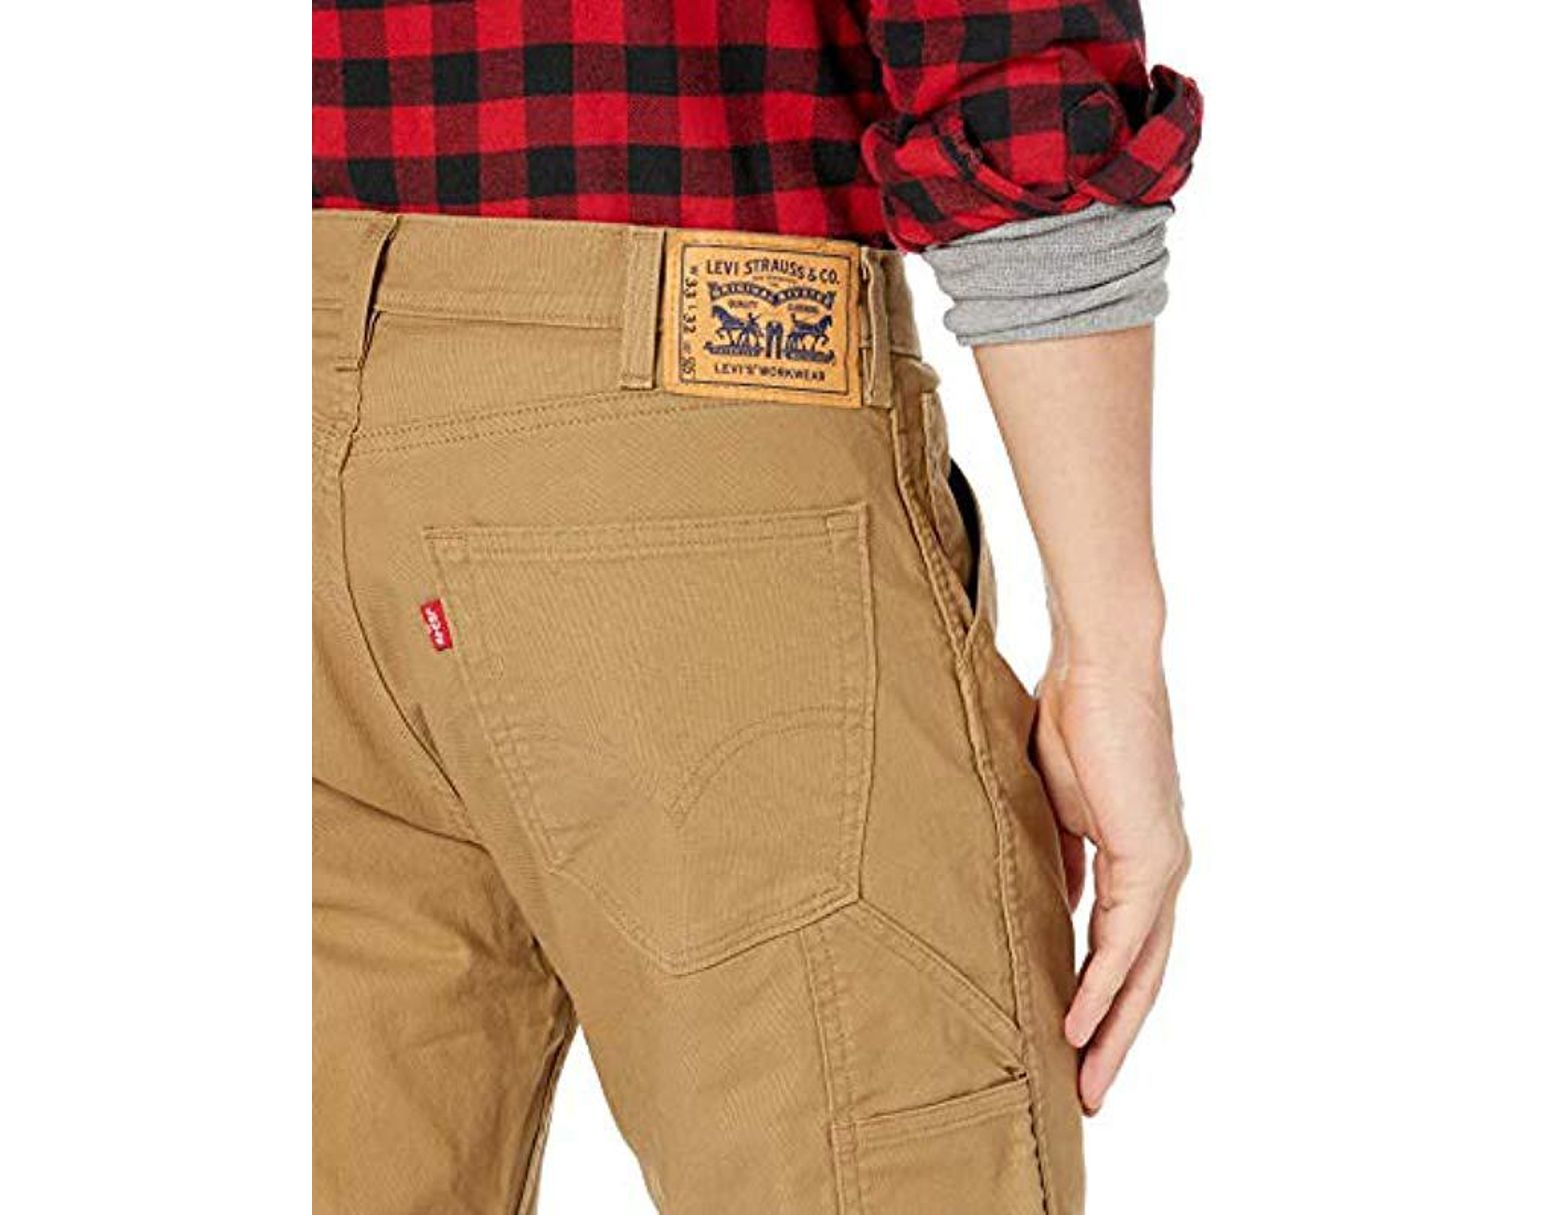 9e4aa0d281 Levi's Workwear 505 Regular Fit Utility Pant in Natural for Men - Lyst